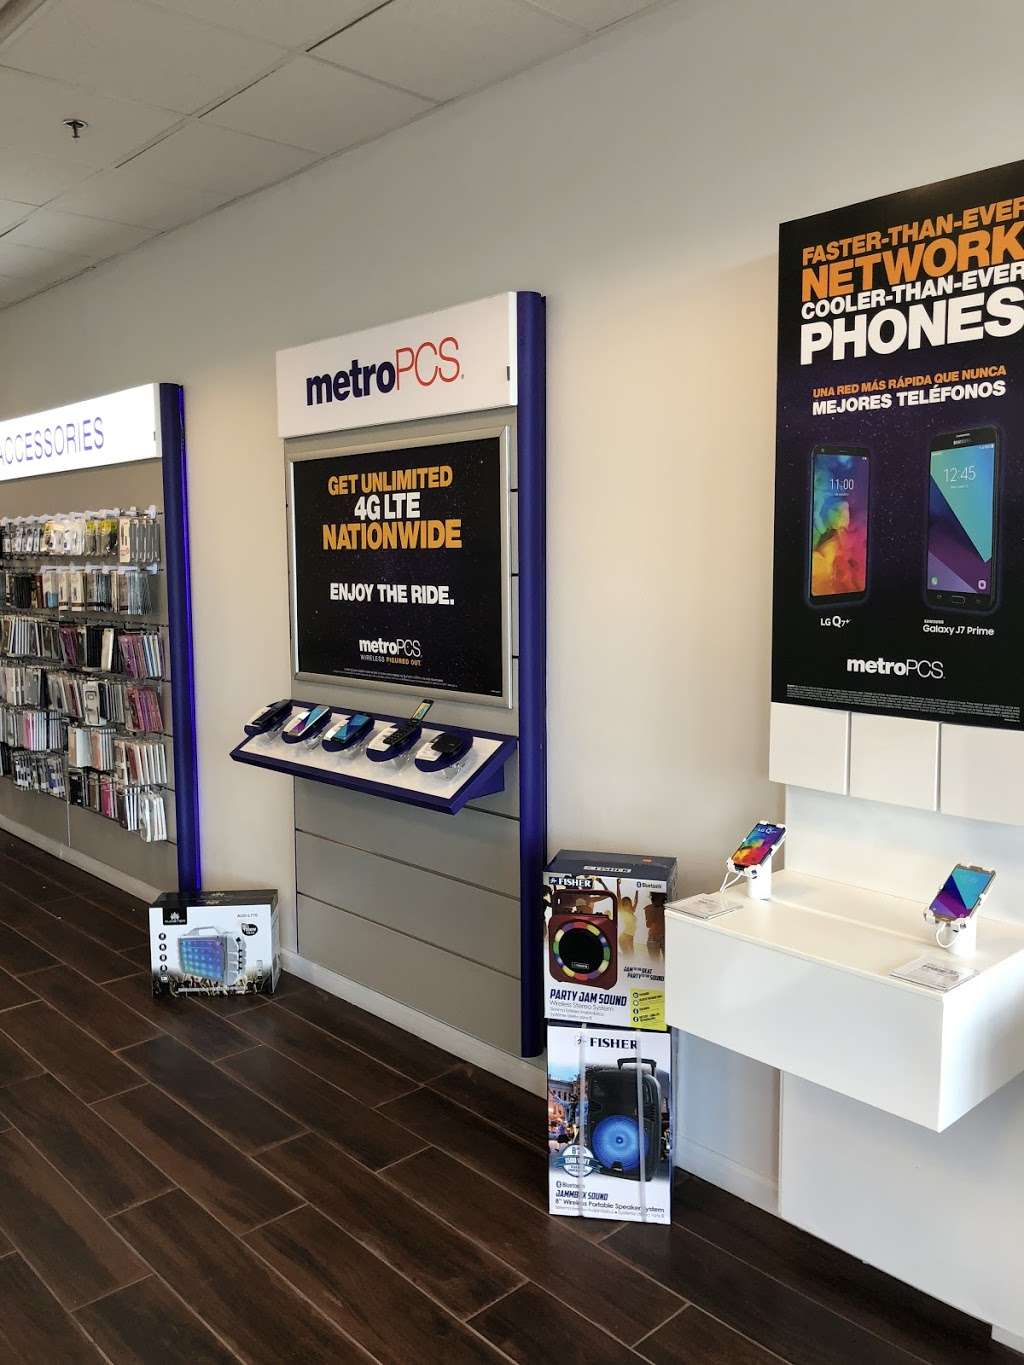 Metro by T-Mobile - electronics store  | Photo 2 of 10 | Address: 500 S River St, Hackensack, NJ 07601, USA | Phone: (201) 373-1000